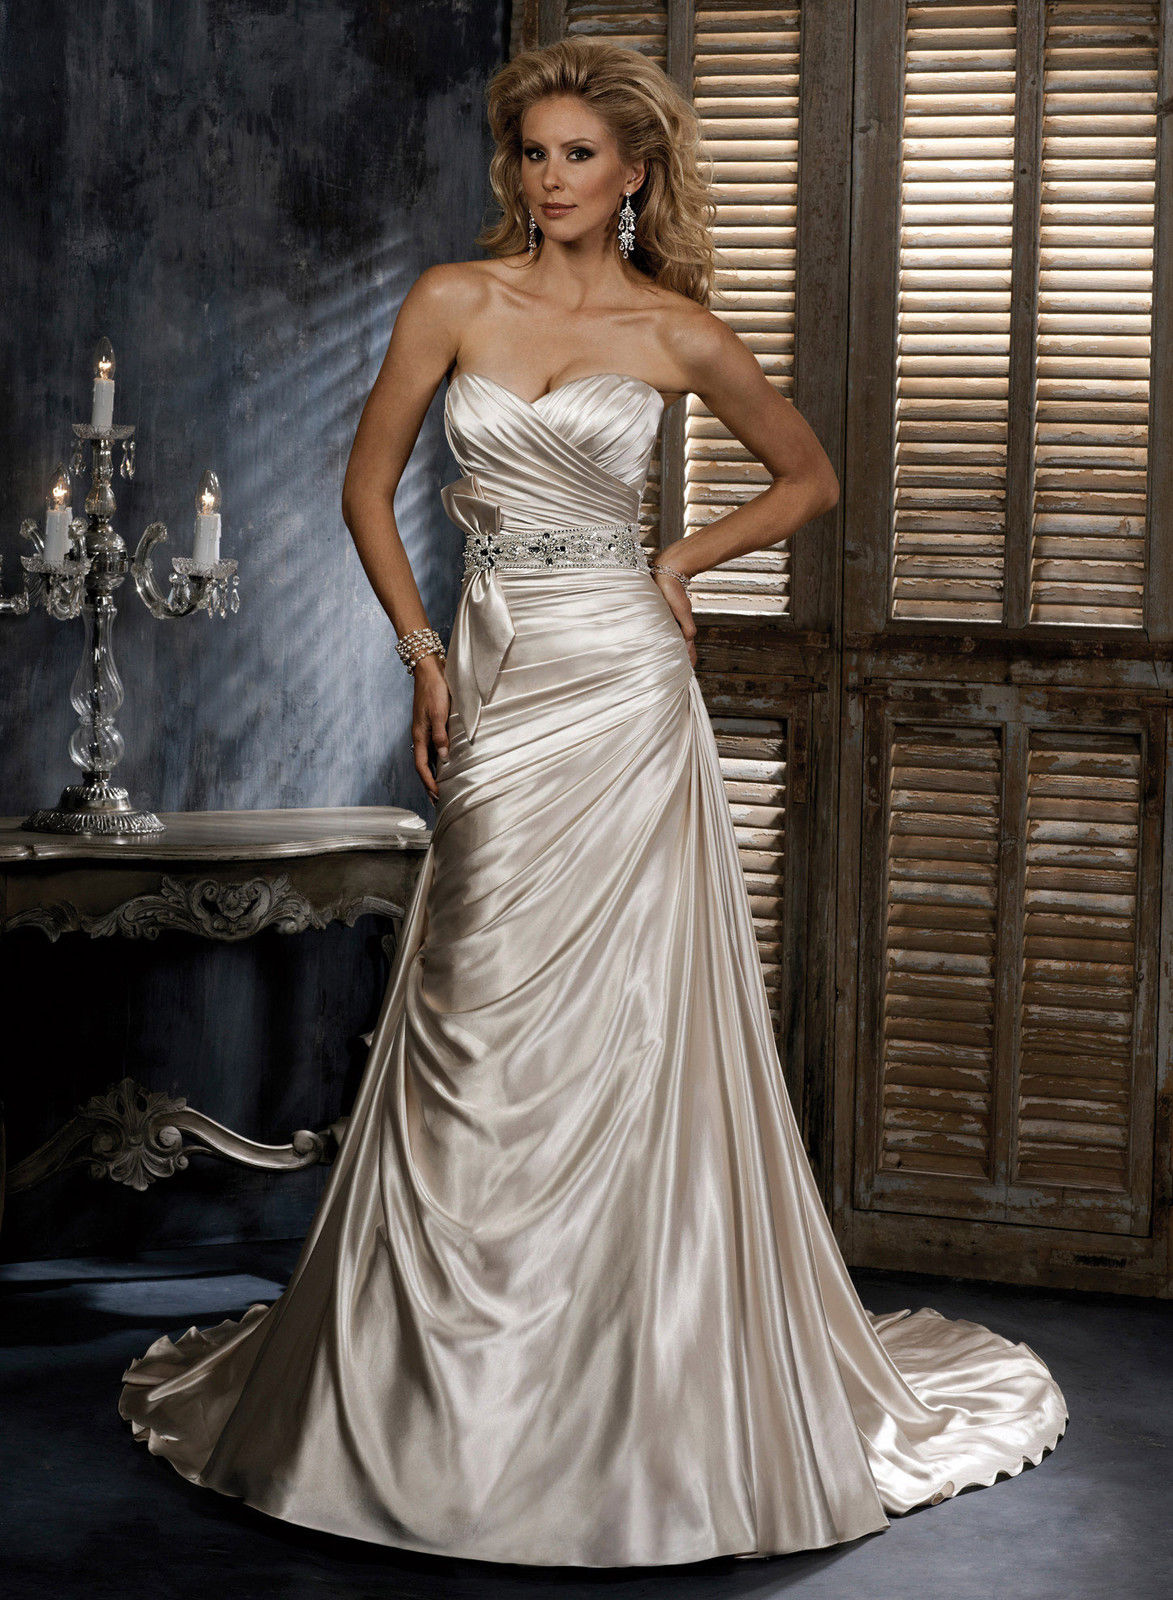 Abeille Bridal Designer Wedding Gowns At Affordable Prices